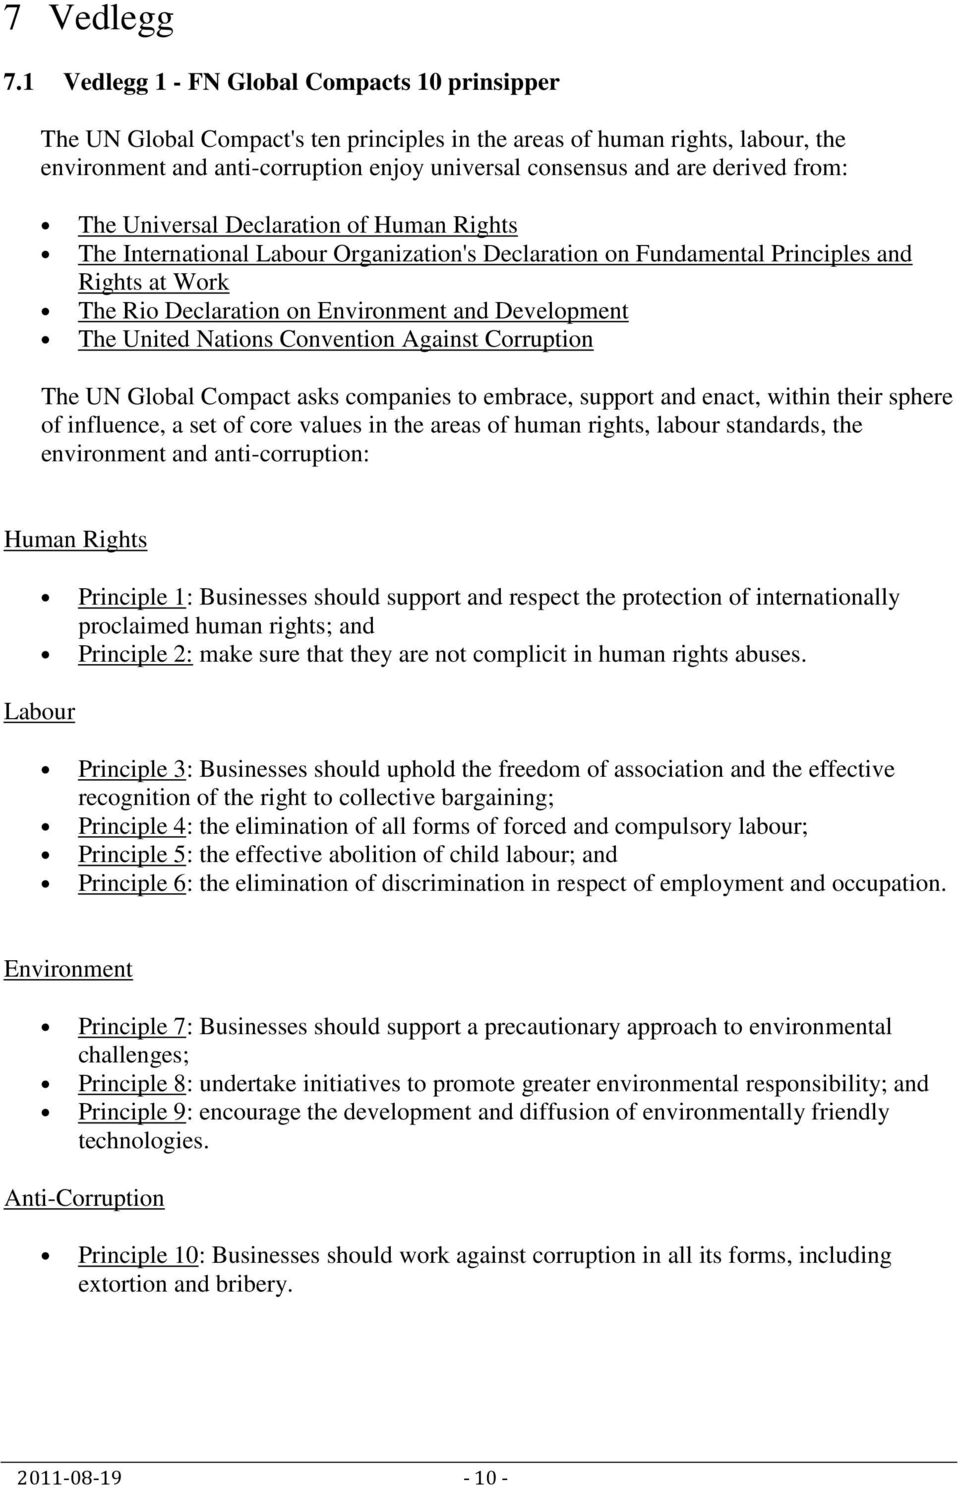 derived from: The Universal Declaration of Human Rights The International Labour Organization's Declaration on Fundamental Principles and Rights at Work The Rio Declaration on Environment and